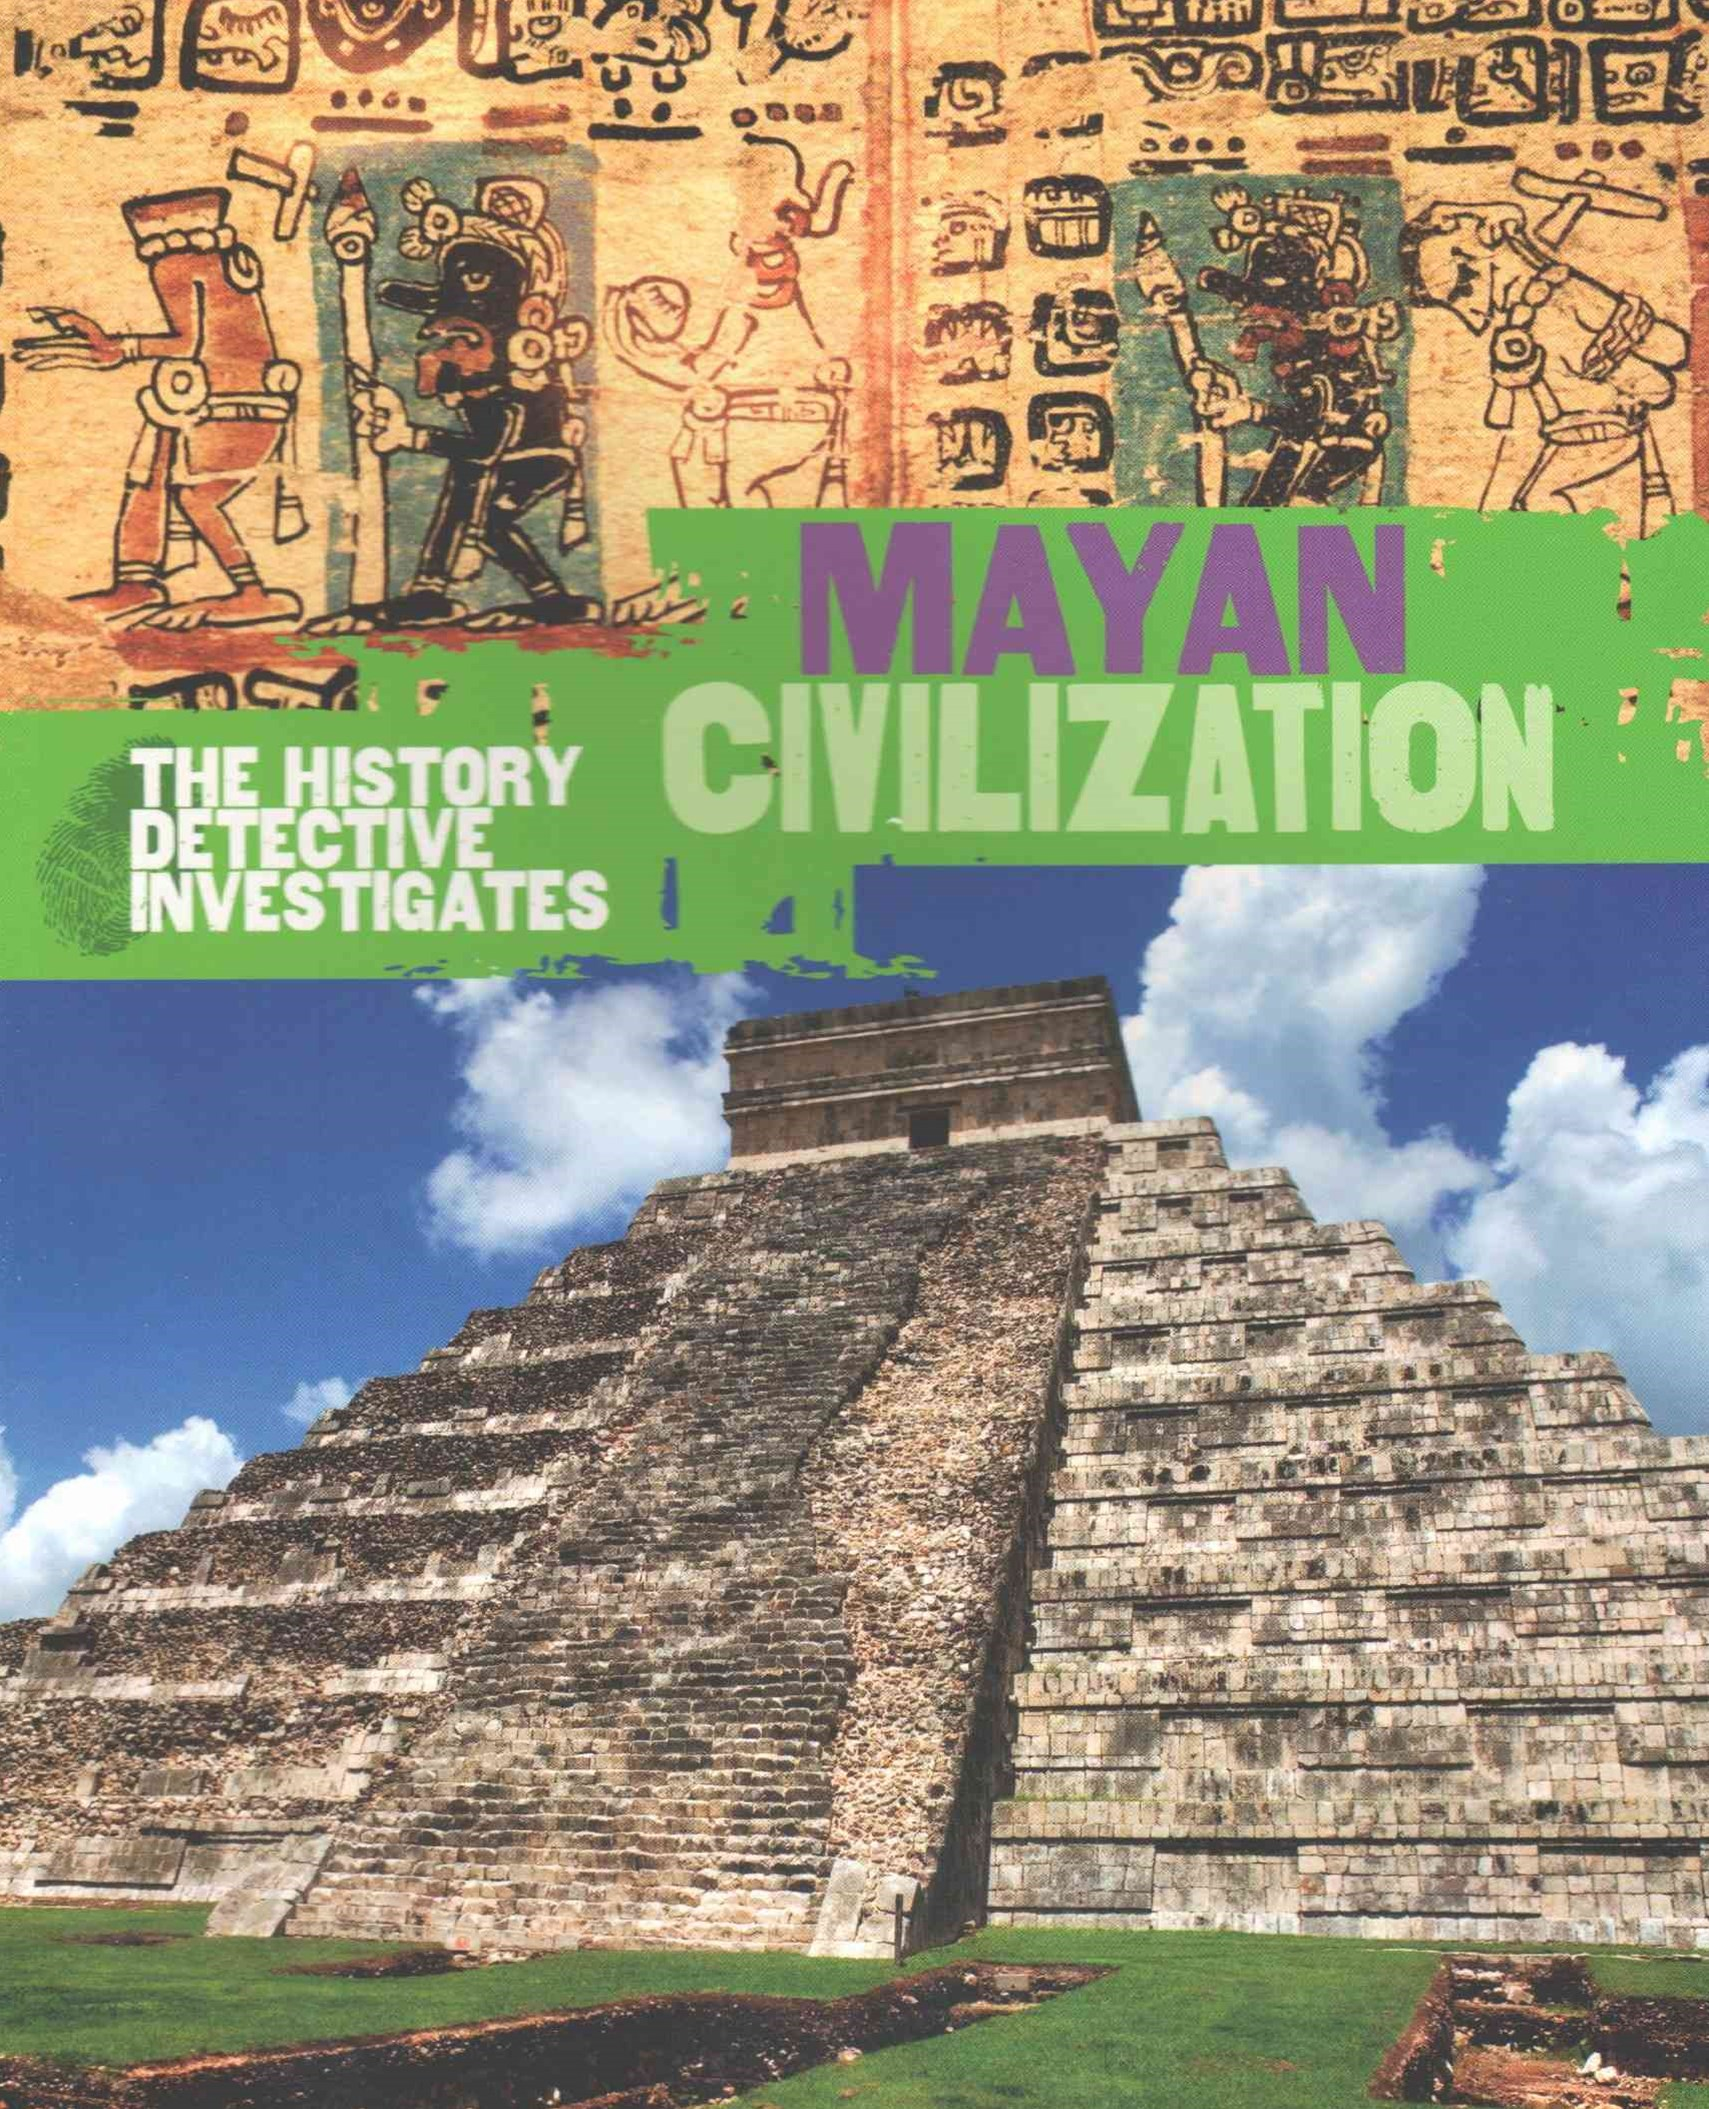 The History Detective Investigates: Mayan Civilization